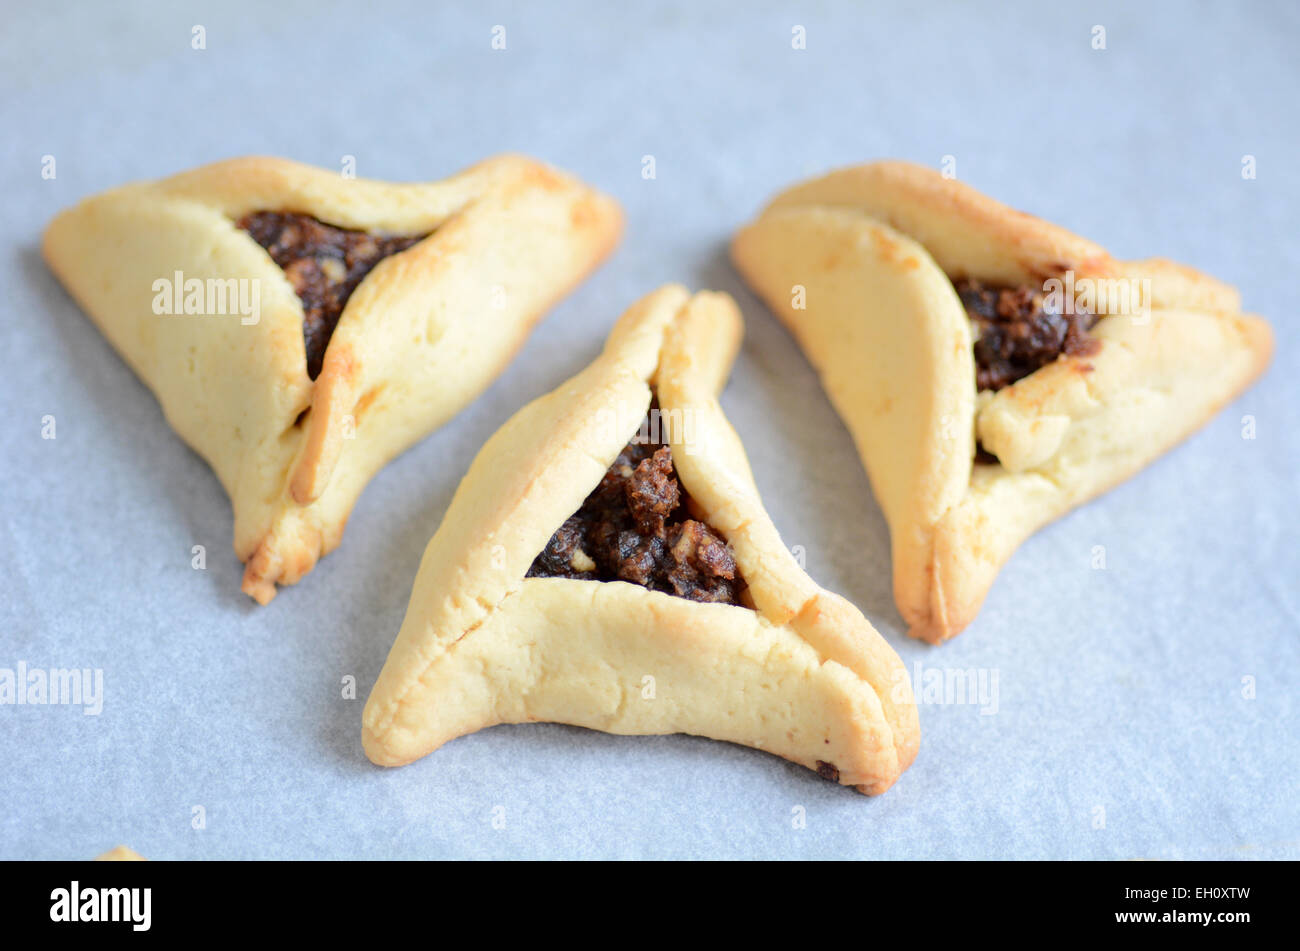 Backed Hamentashen, Ozen Haman, Purim cookies for the Jewish holiday Purim. - Stock Image